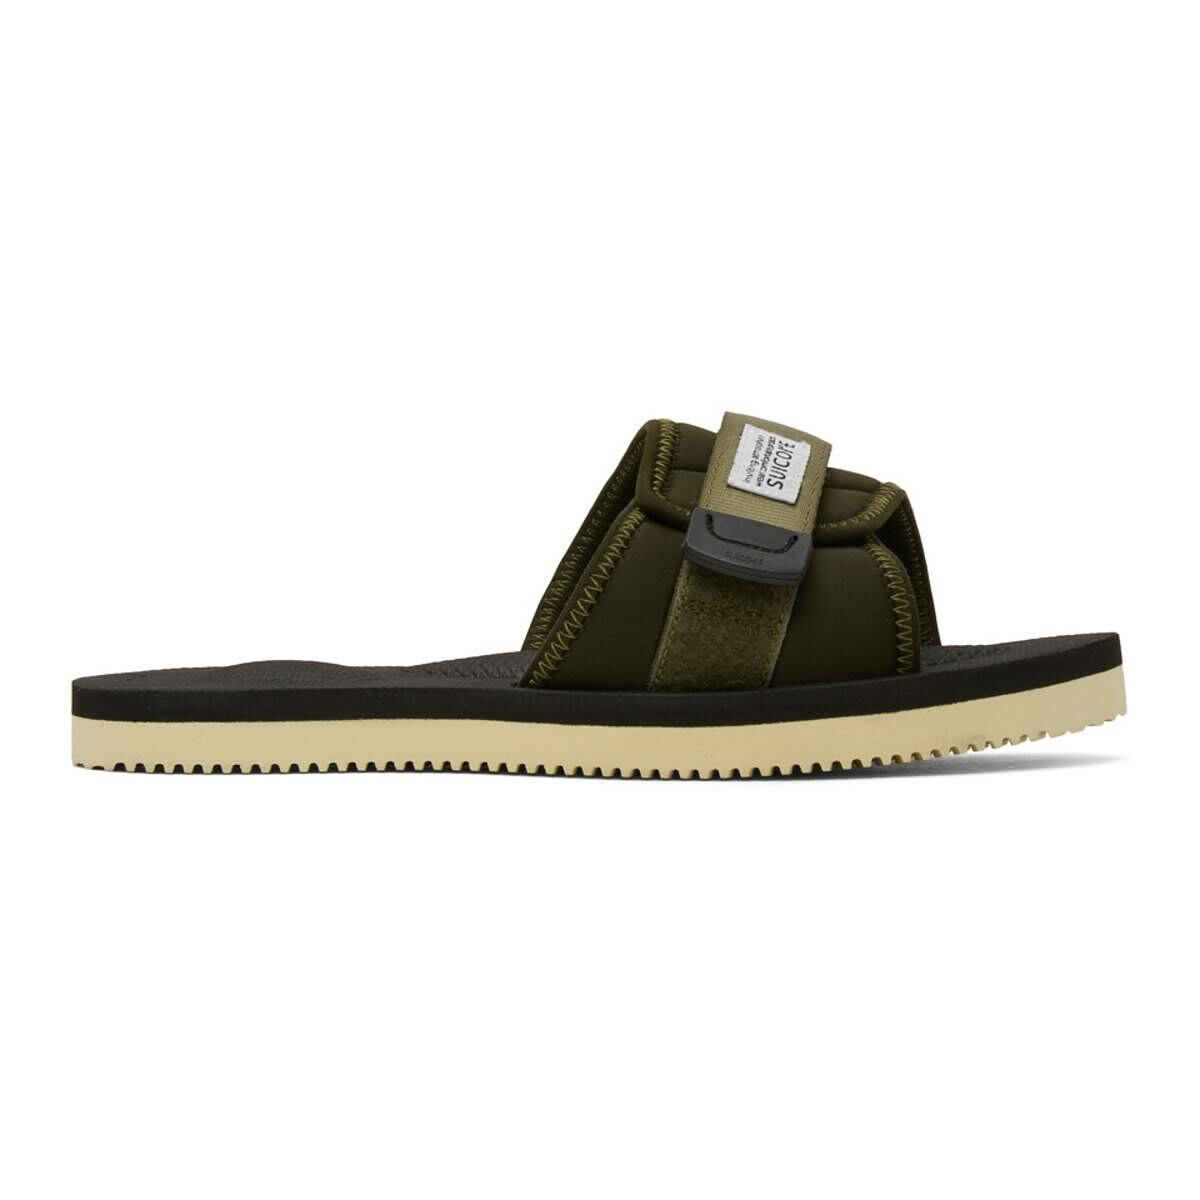 Suicoke Green Padri Sandals Ssense USA MEN Men SHOES Mens SANDALS